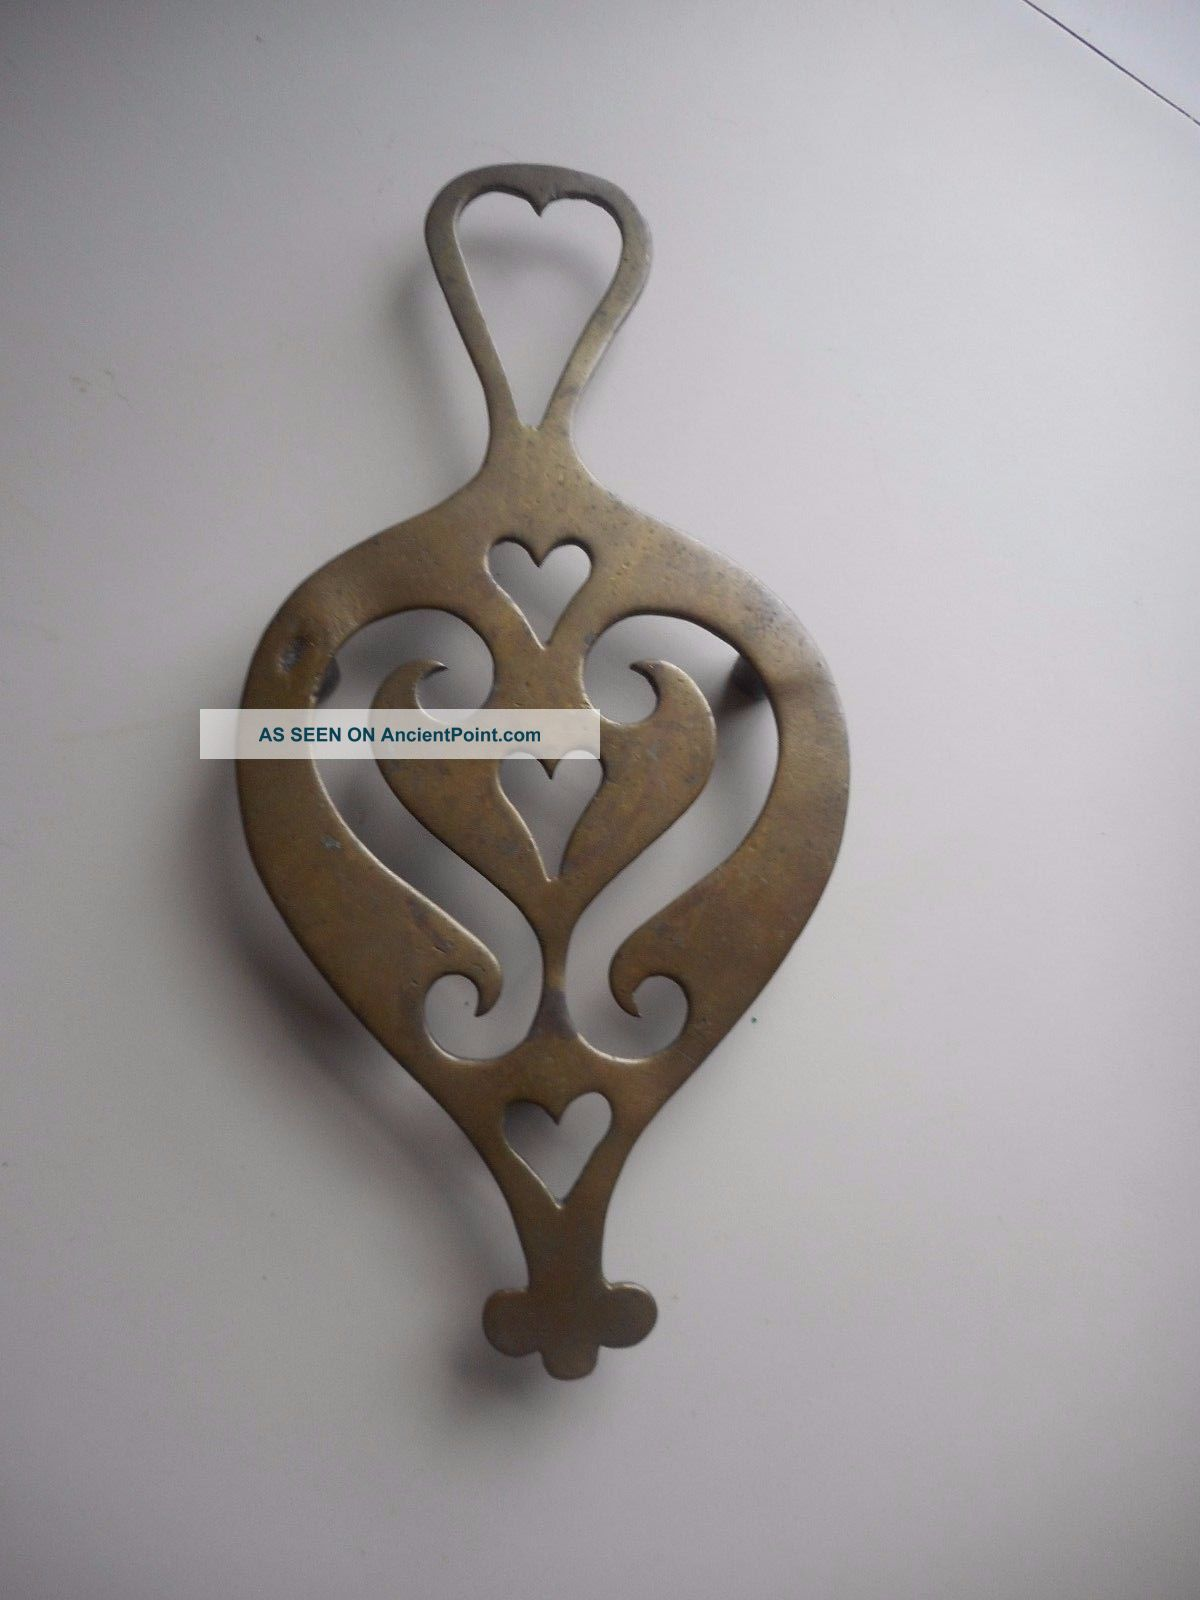 Antique Brass Trivet With 5 Hearts Best Early Hearted Brass Trivet.  Aafa Trivets photo